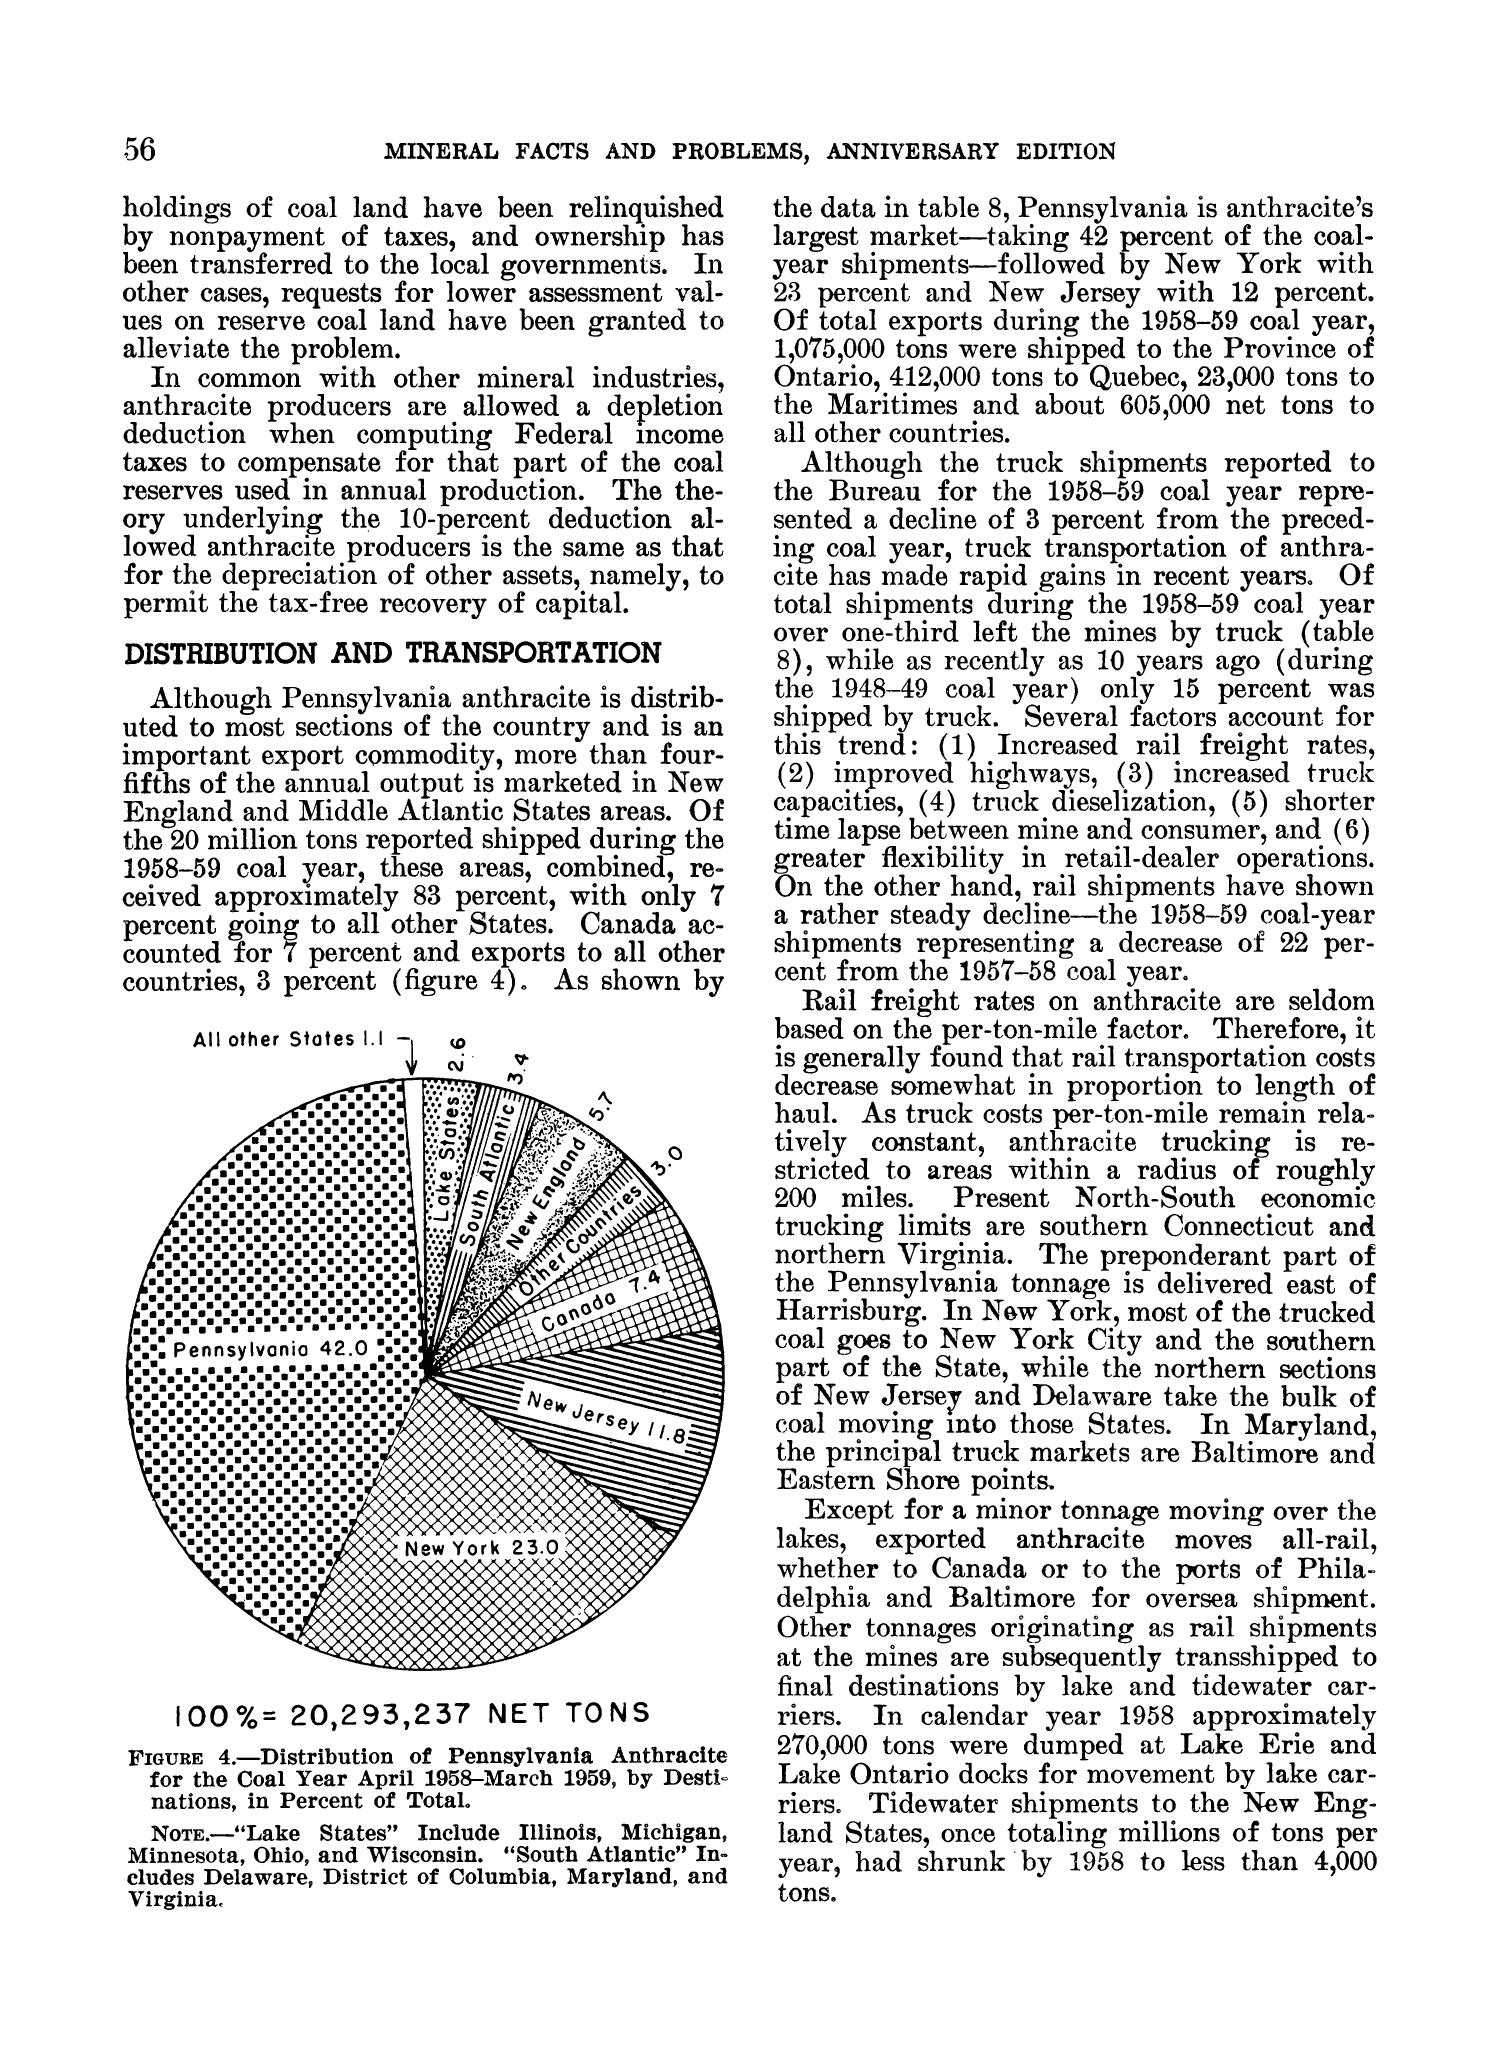 Mineral Facts and Problems: 1960 Edition                                                                                                      56